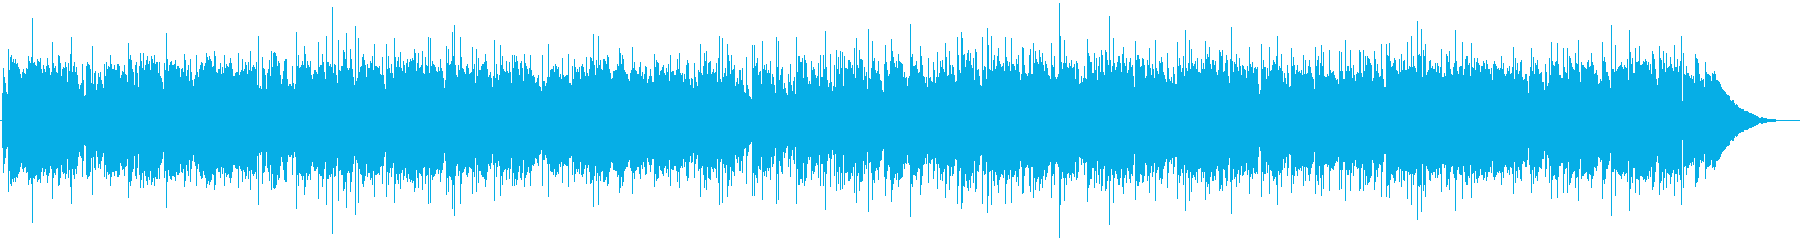 My home in Kentucky (guitar)'s reproduced waveform